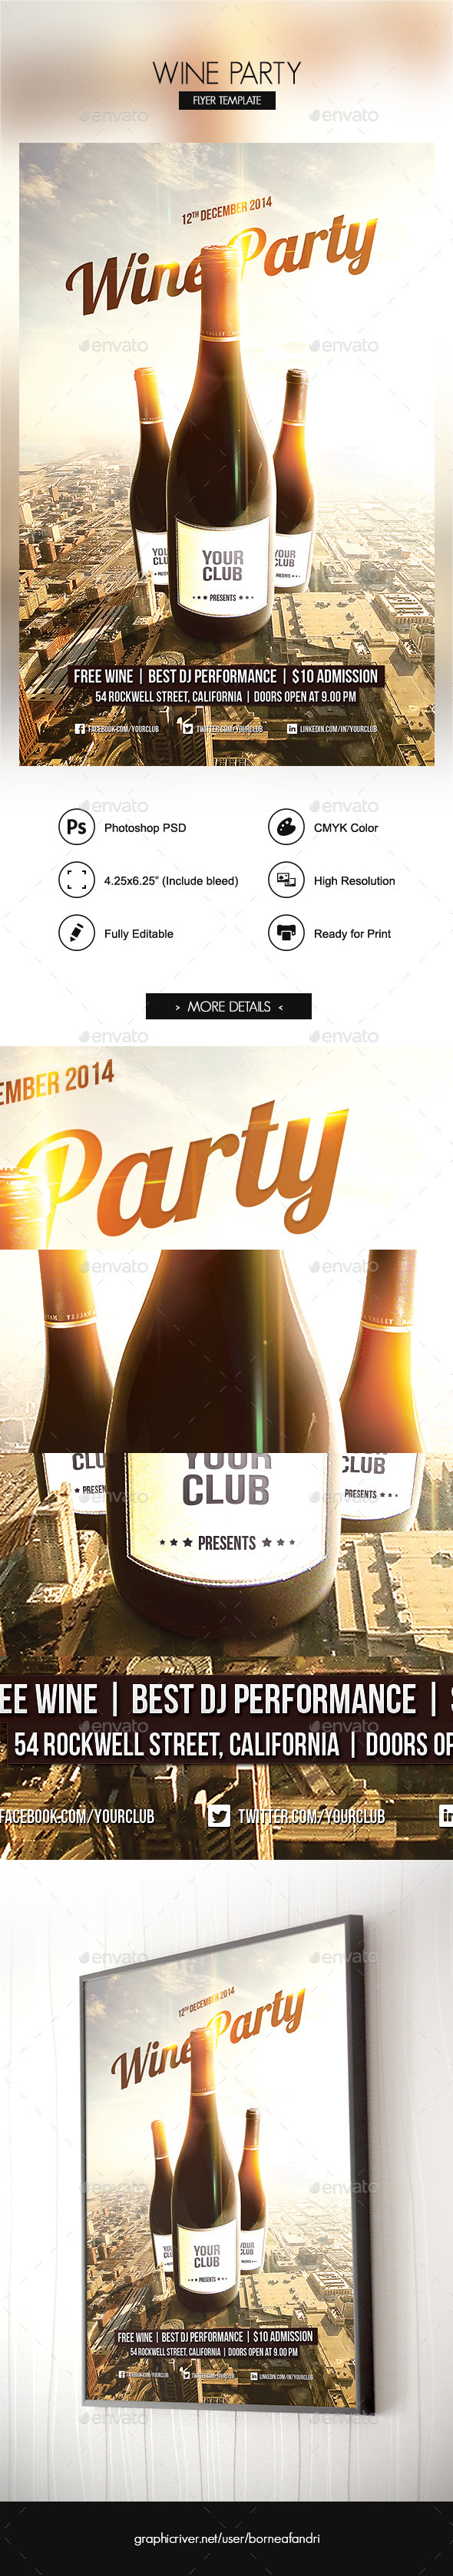 Wine Party Flyer - Clubs & Parties Events